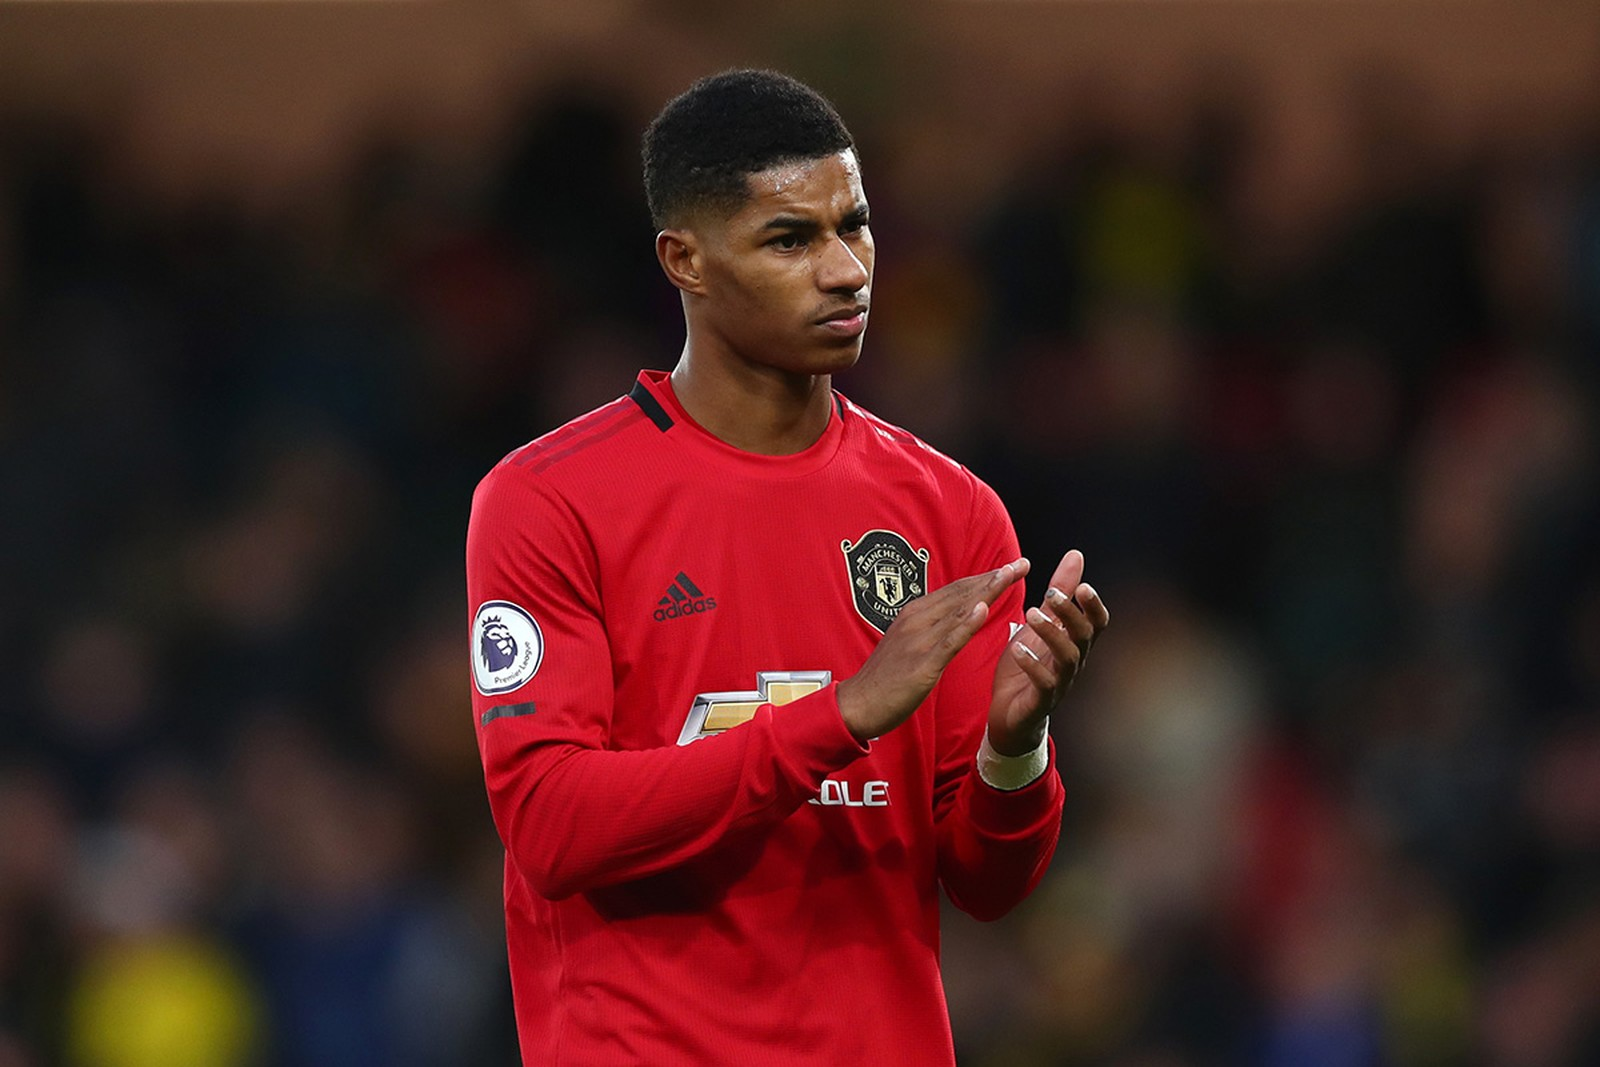 Marcus Rashford to launch book club to give all children the chance for escapism - About Manchester